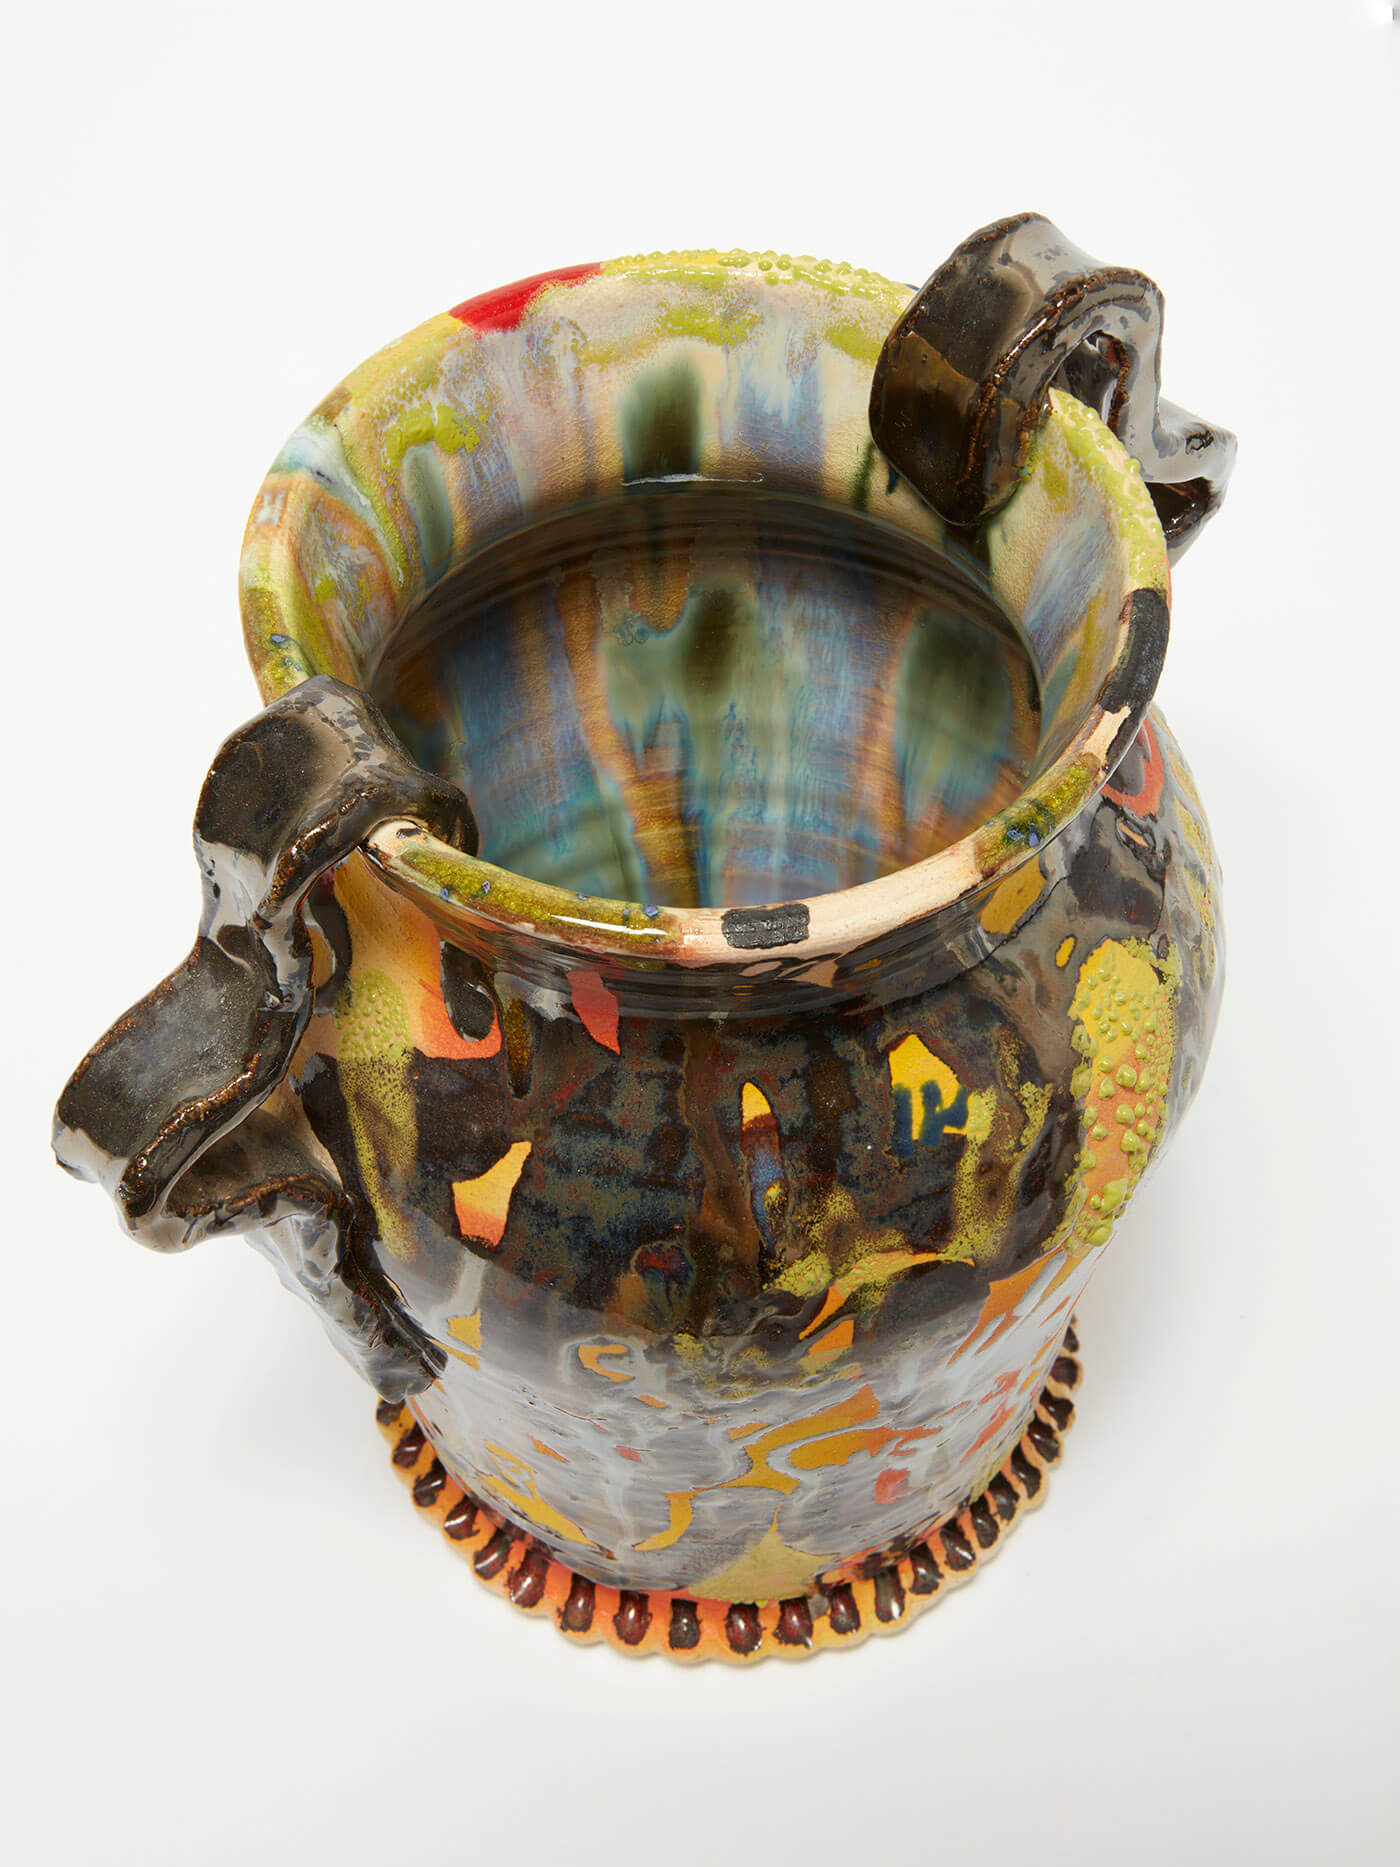 Farrag, Star-Eyed Simpson Jug, 2018 (SF 18.022) E